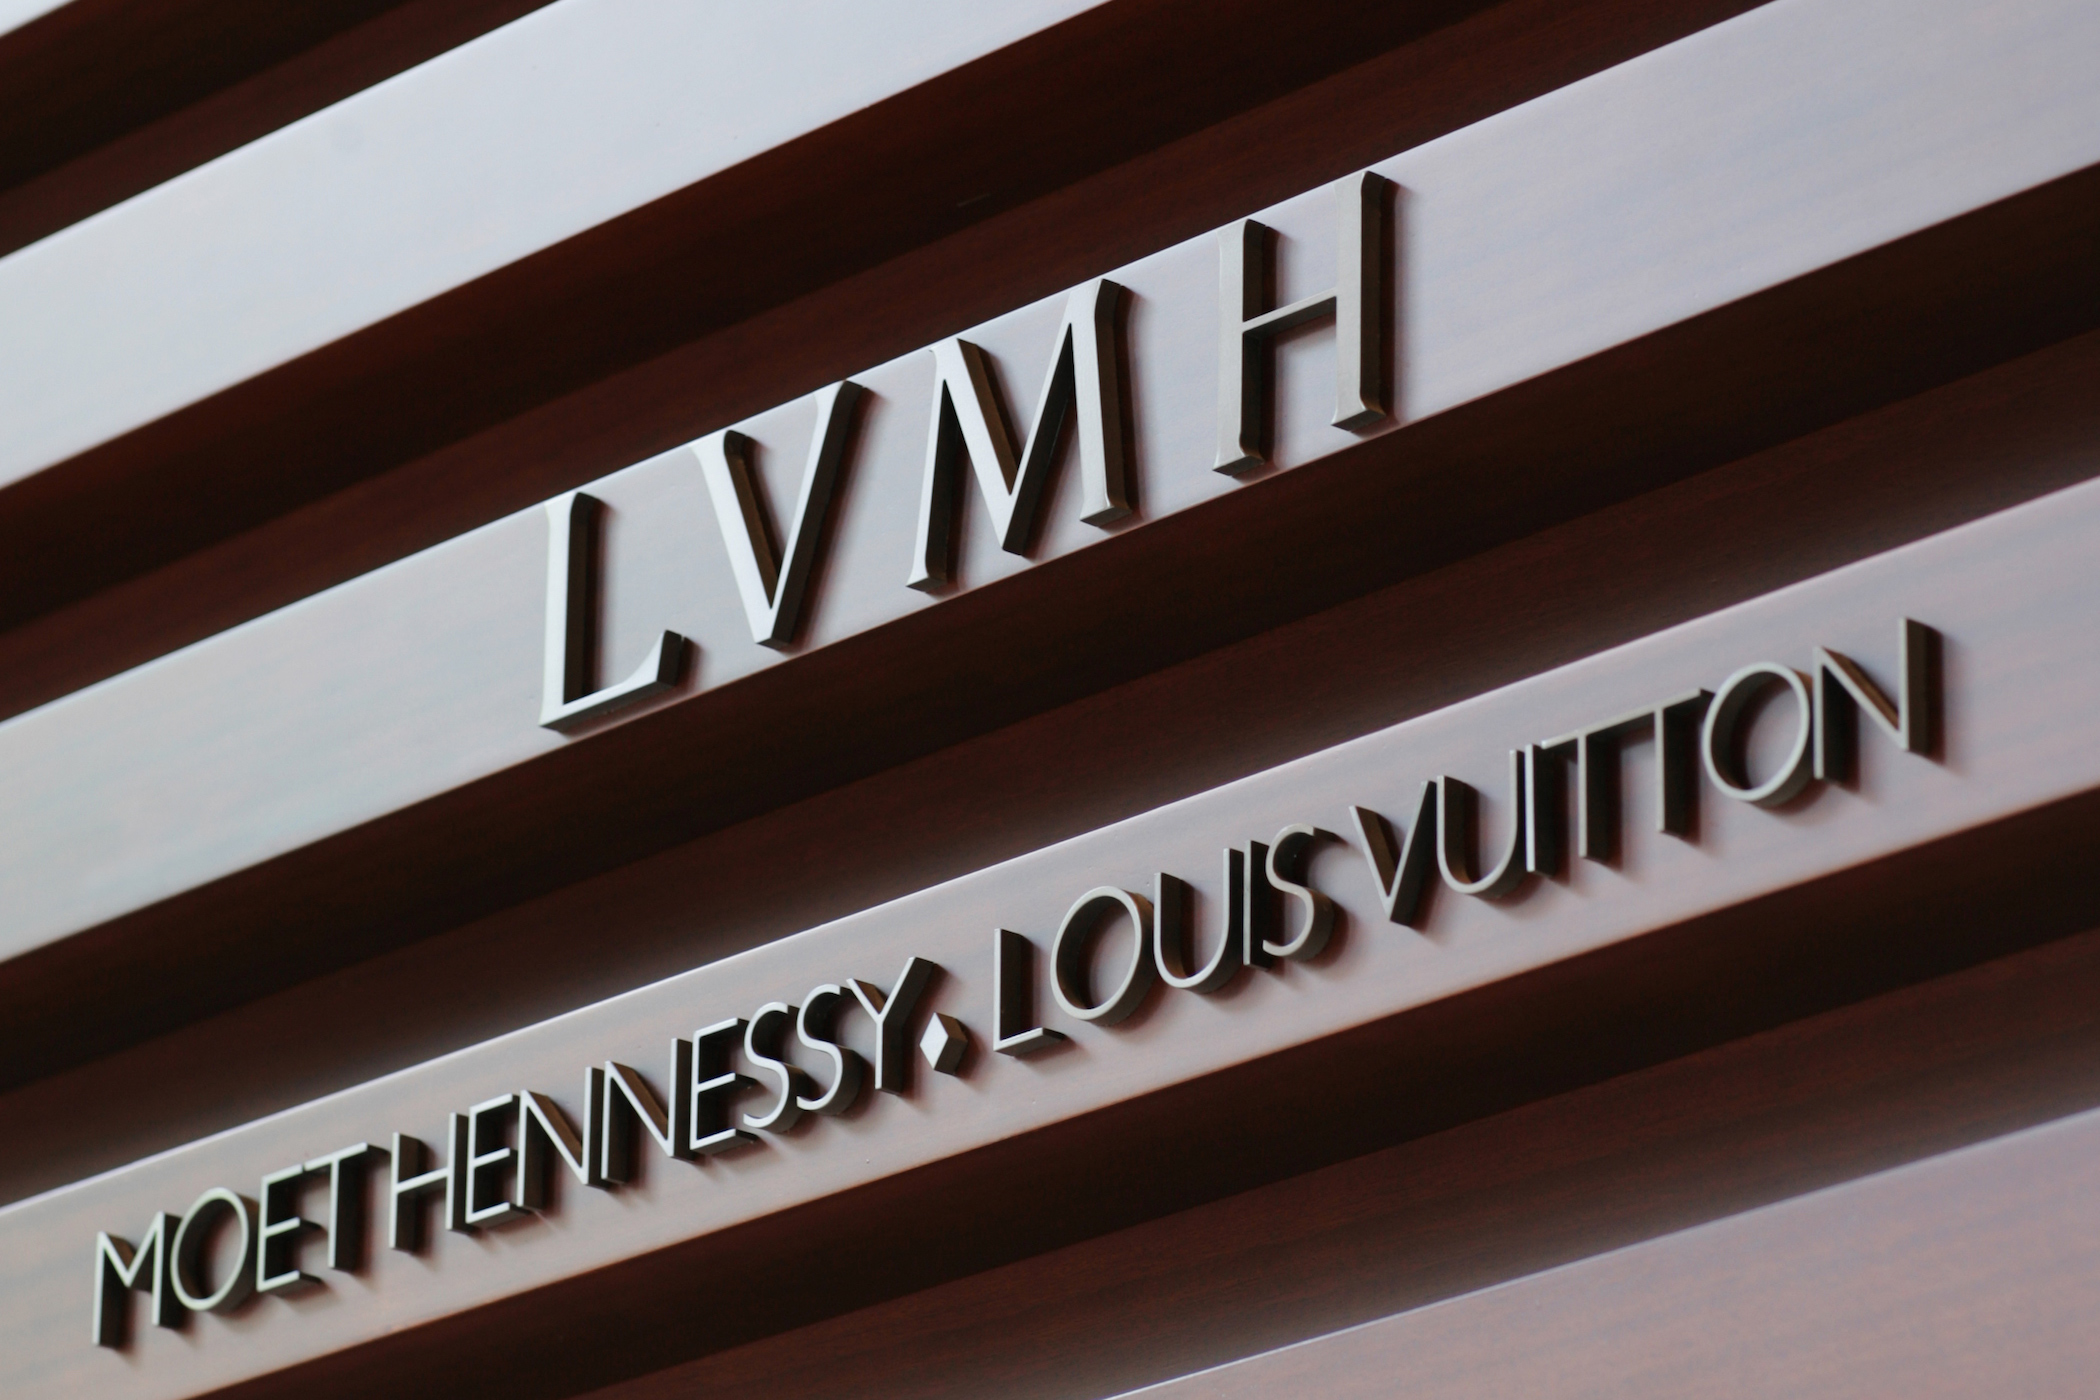 LVMH annual results watch and jewelry division